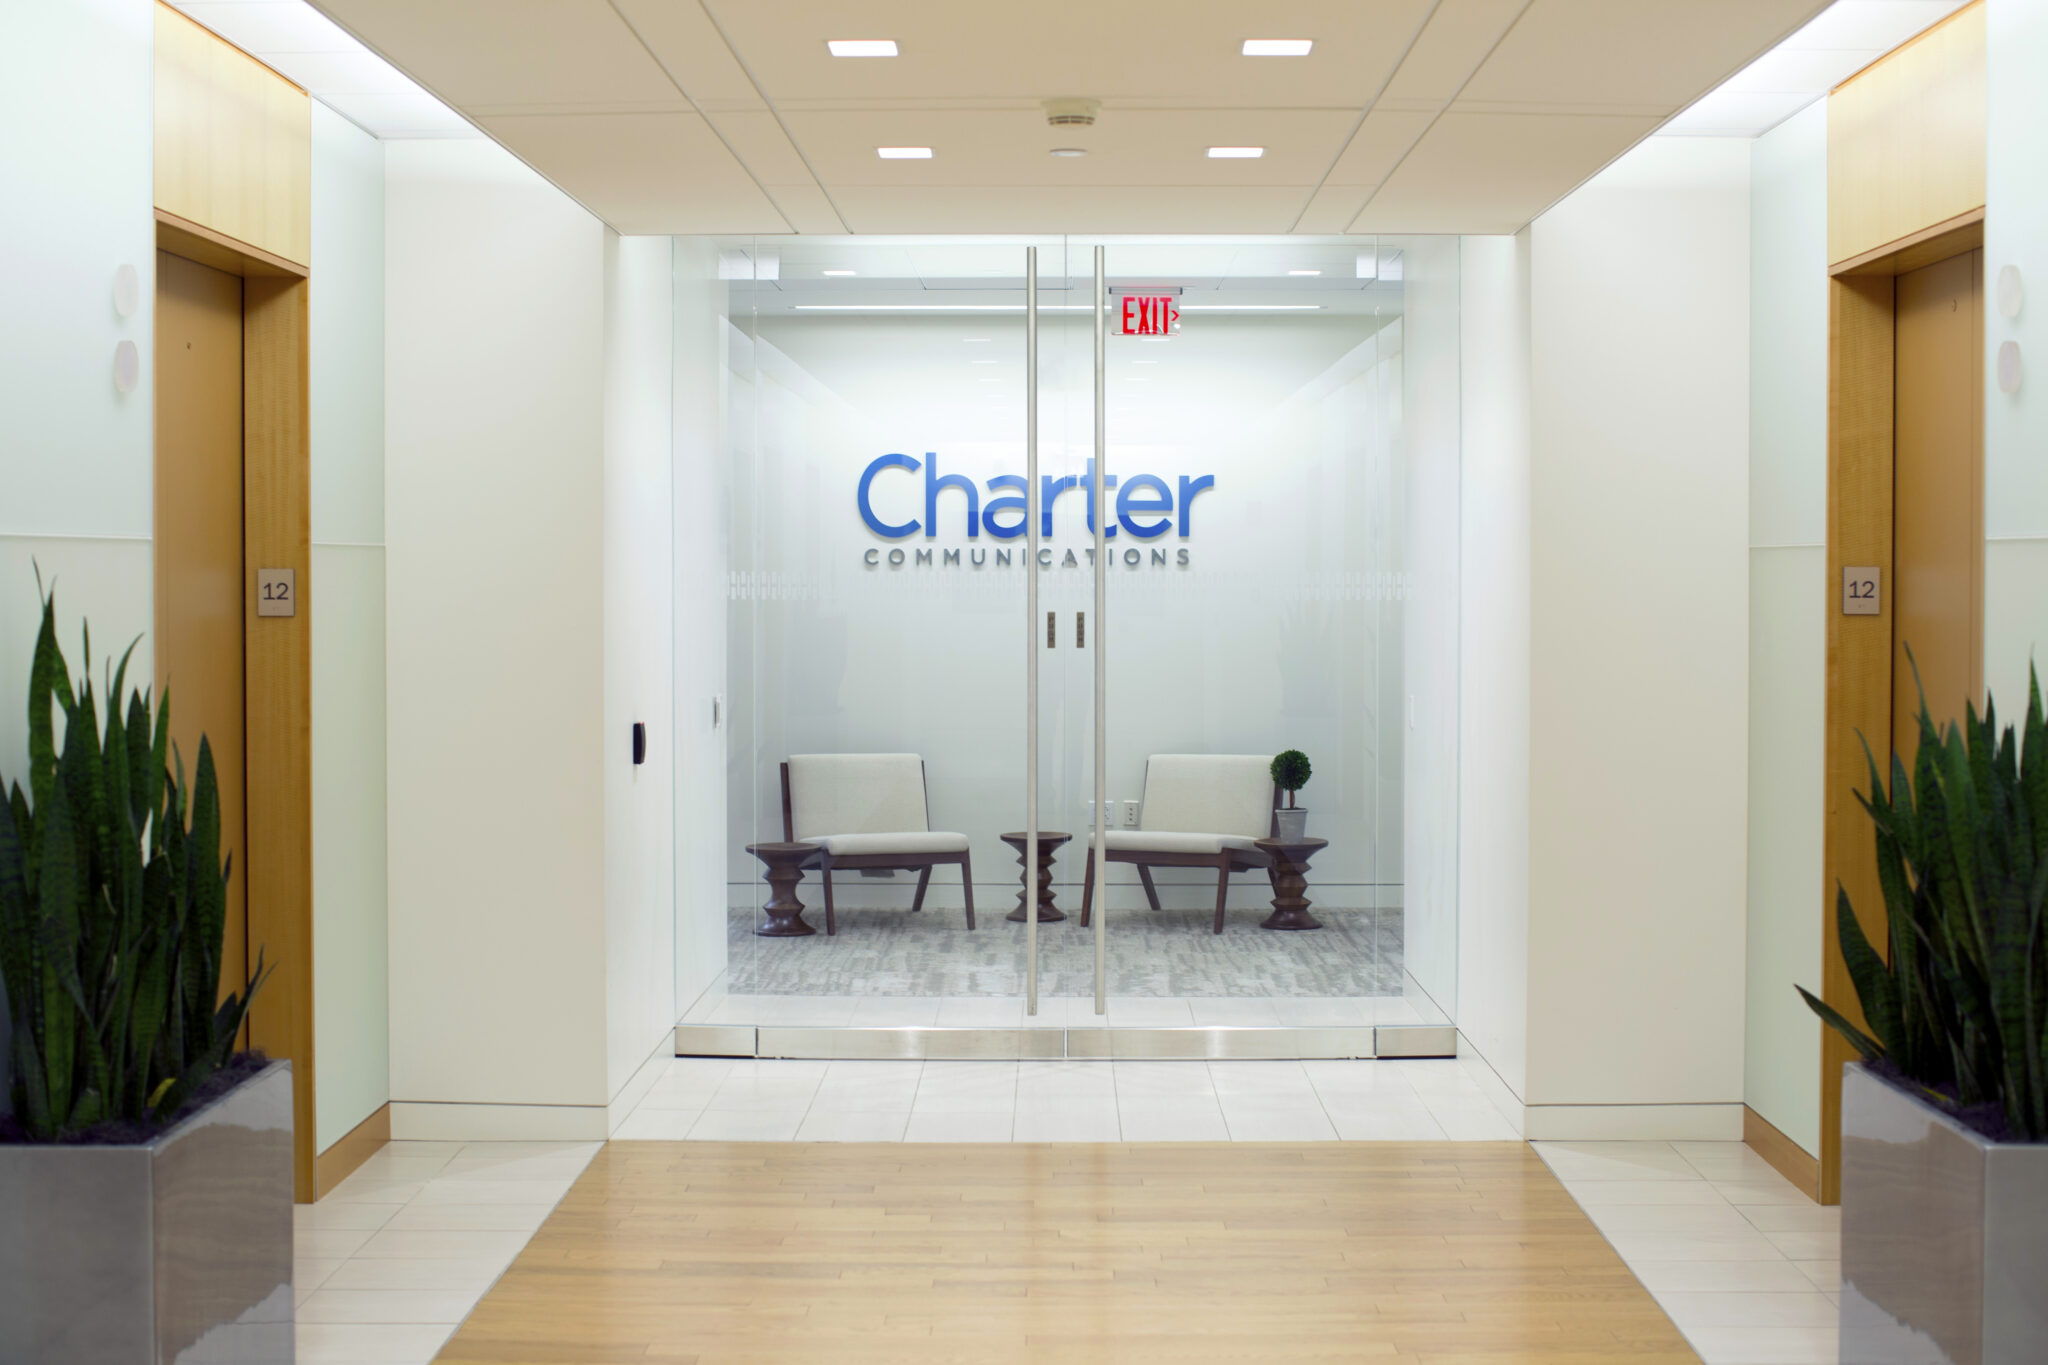 Charter Communications headquarters in Stamford, CT